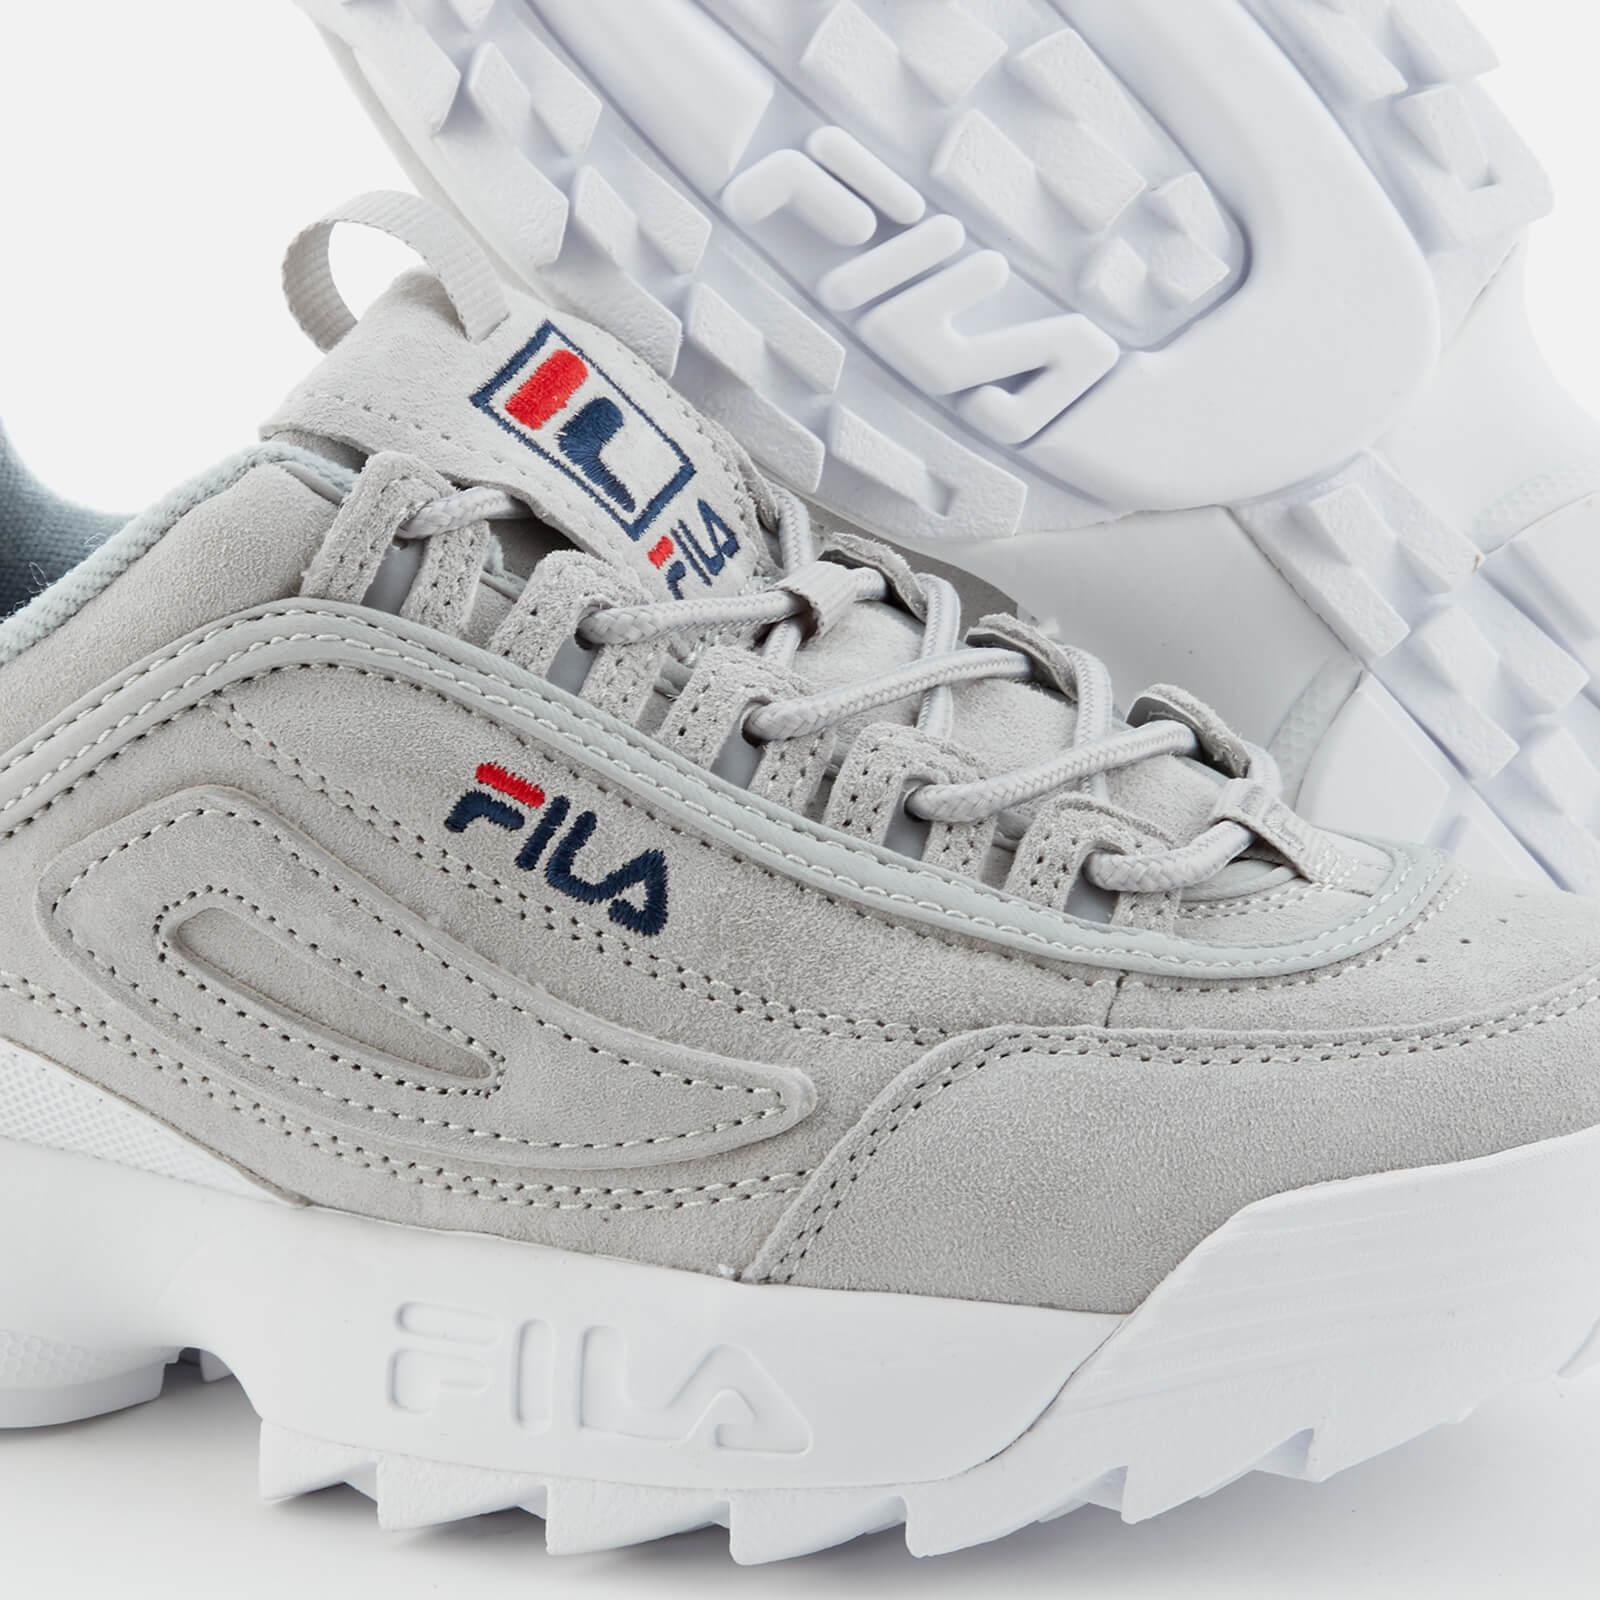 Fila Disruptor 2 Premium Suede Trainers in Grey (Grey) for Men